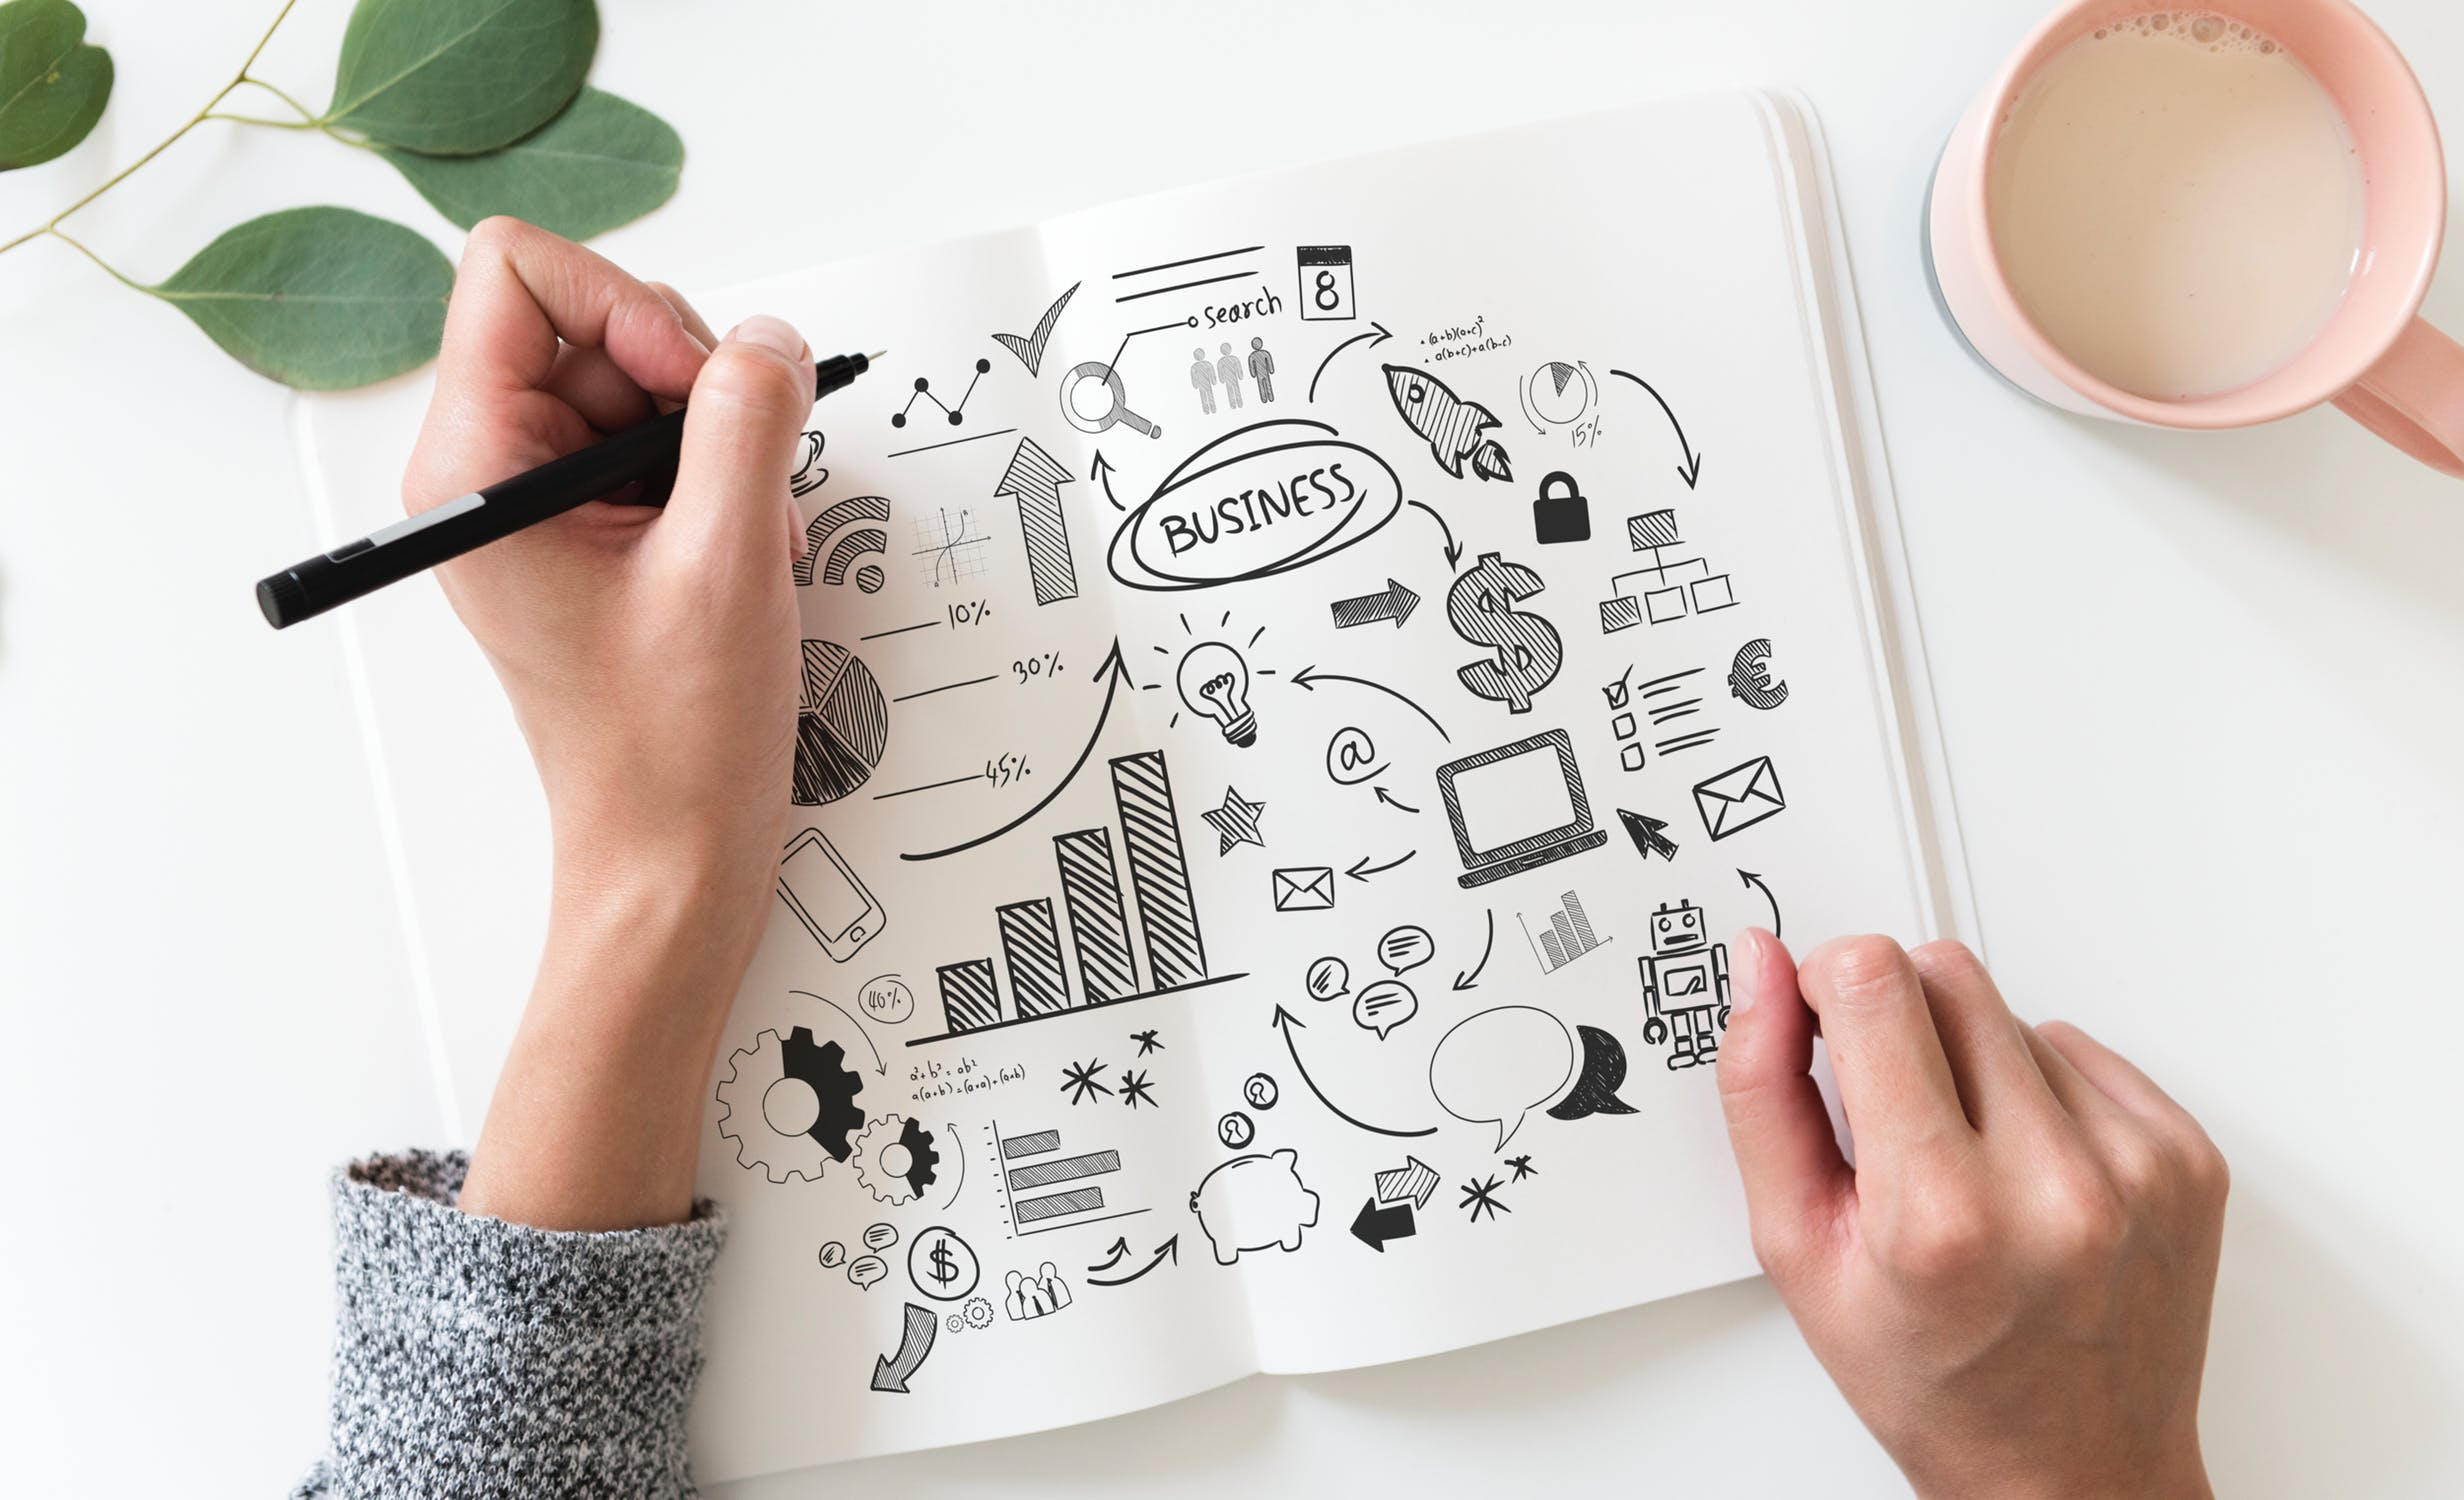 5 Tips for Small Businesses on Small Budgets